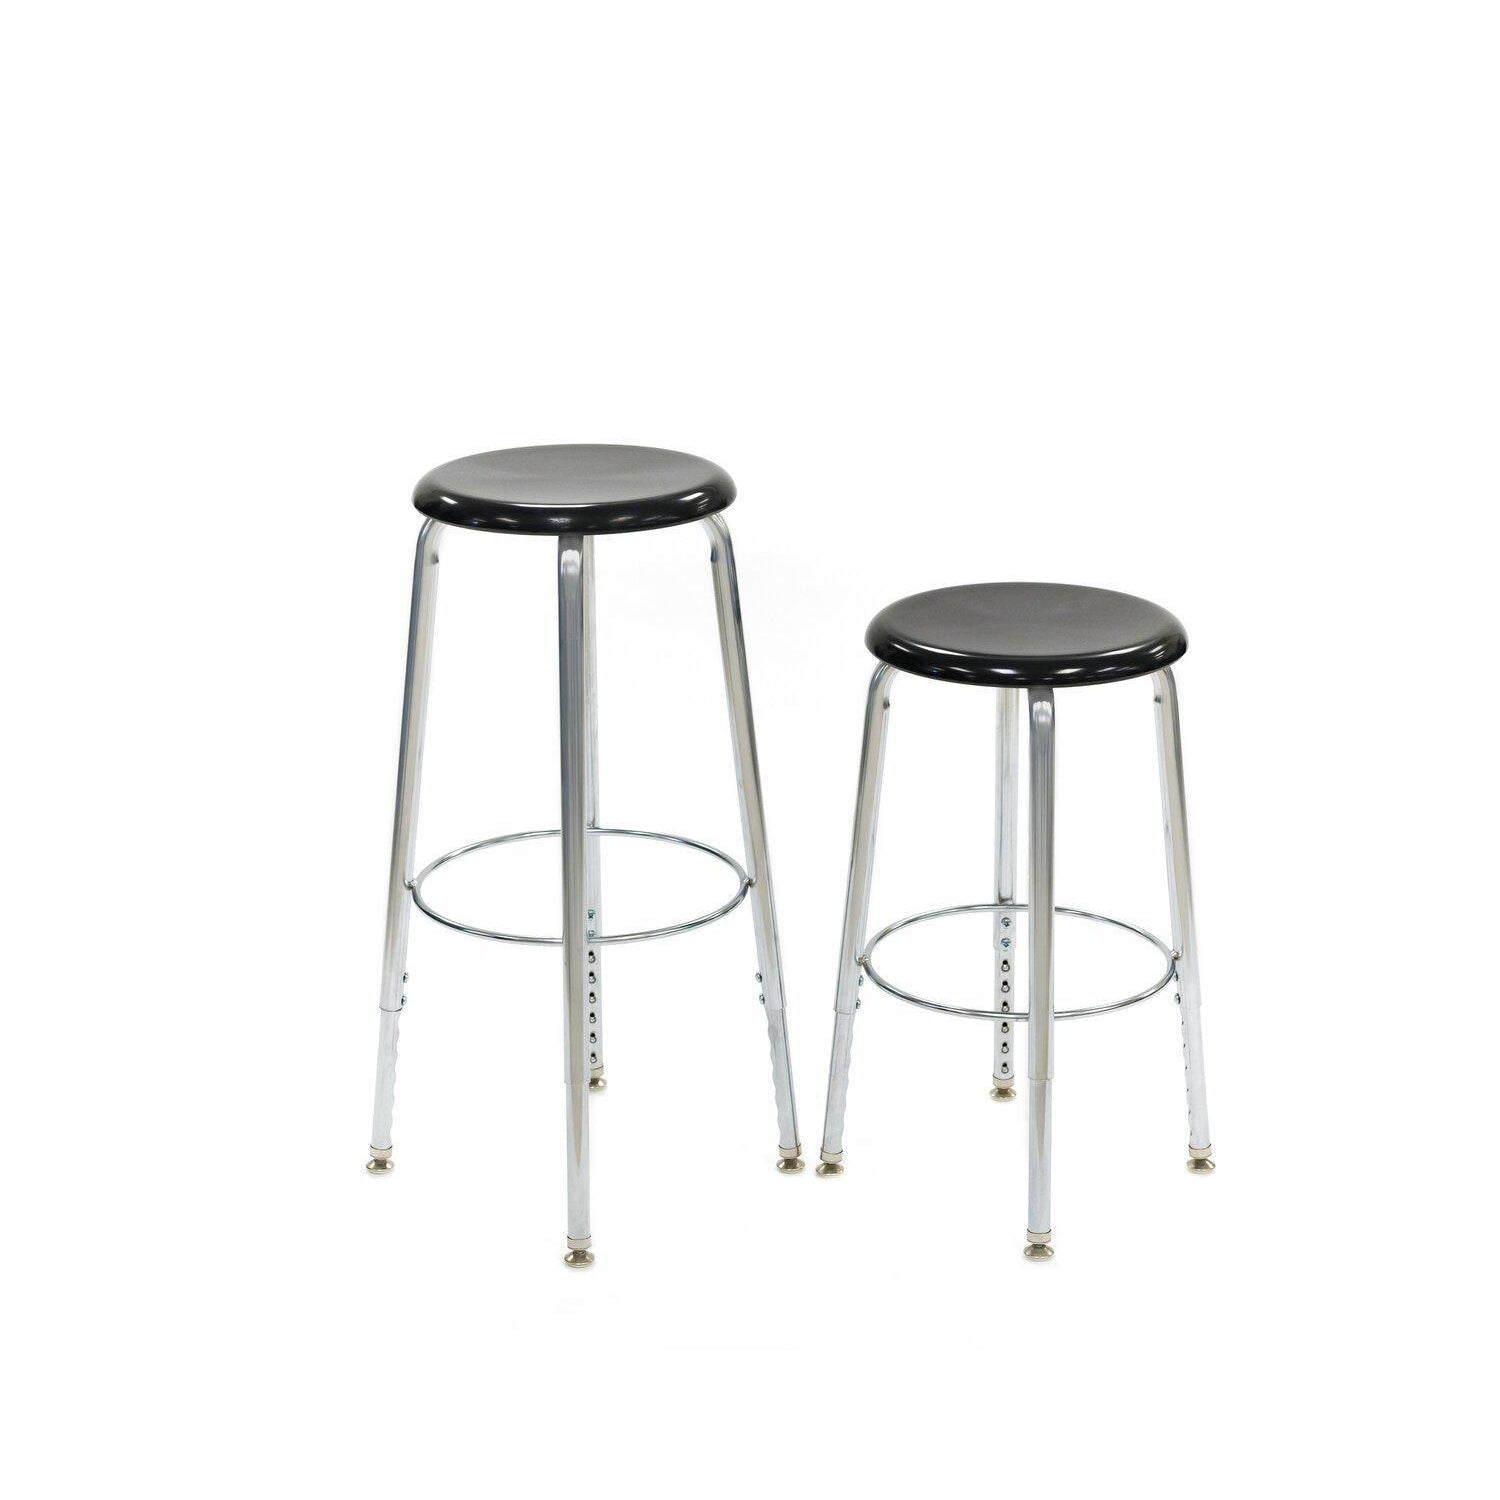 "Adjustable Height Stool with Solid Hard Plastic Seat, 24"" - 30"" H - QUICK SHIP"